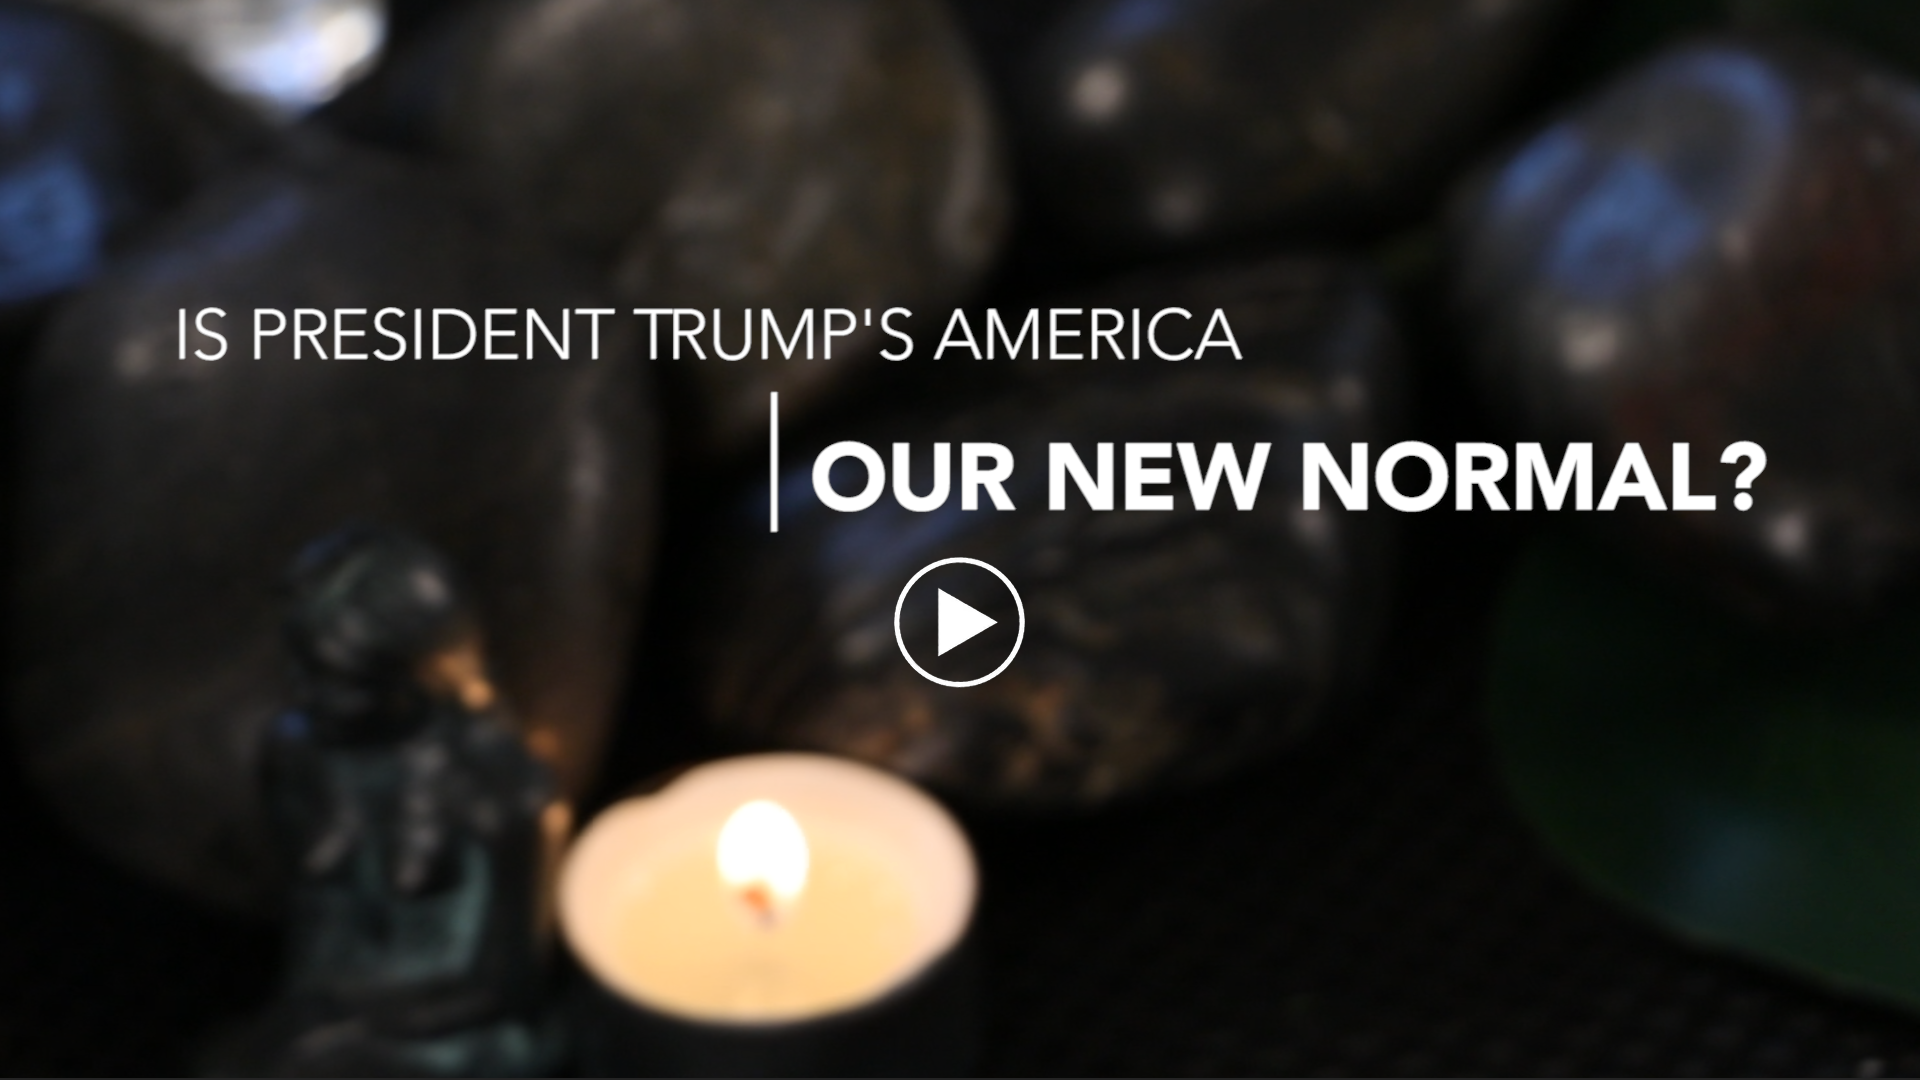 Infused.tv - Is President Trump's America Our New Normal? (Episode 1 - Course 1)